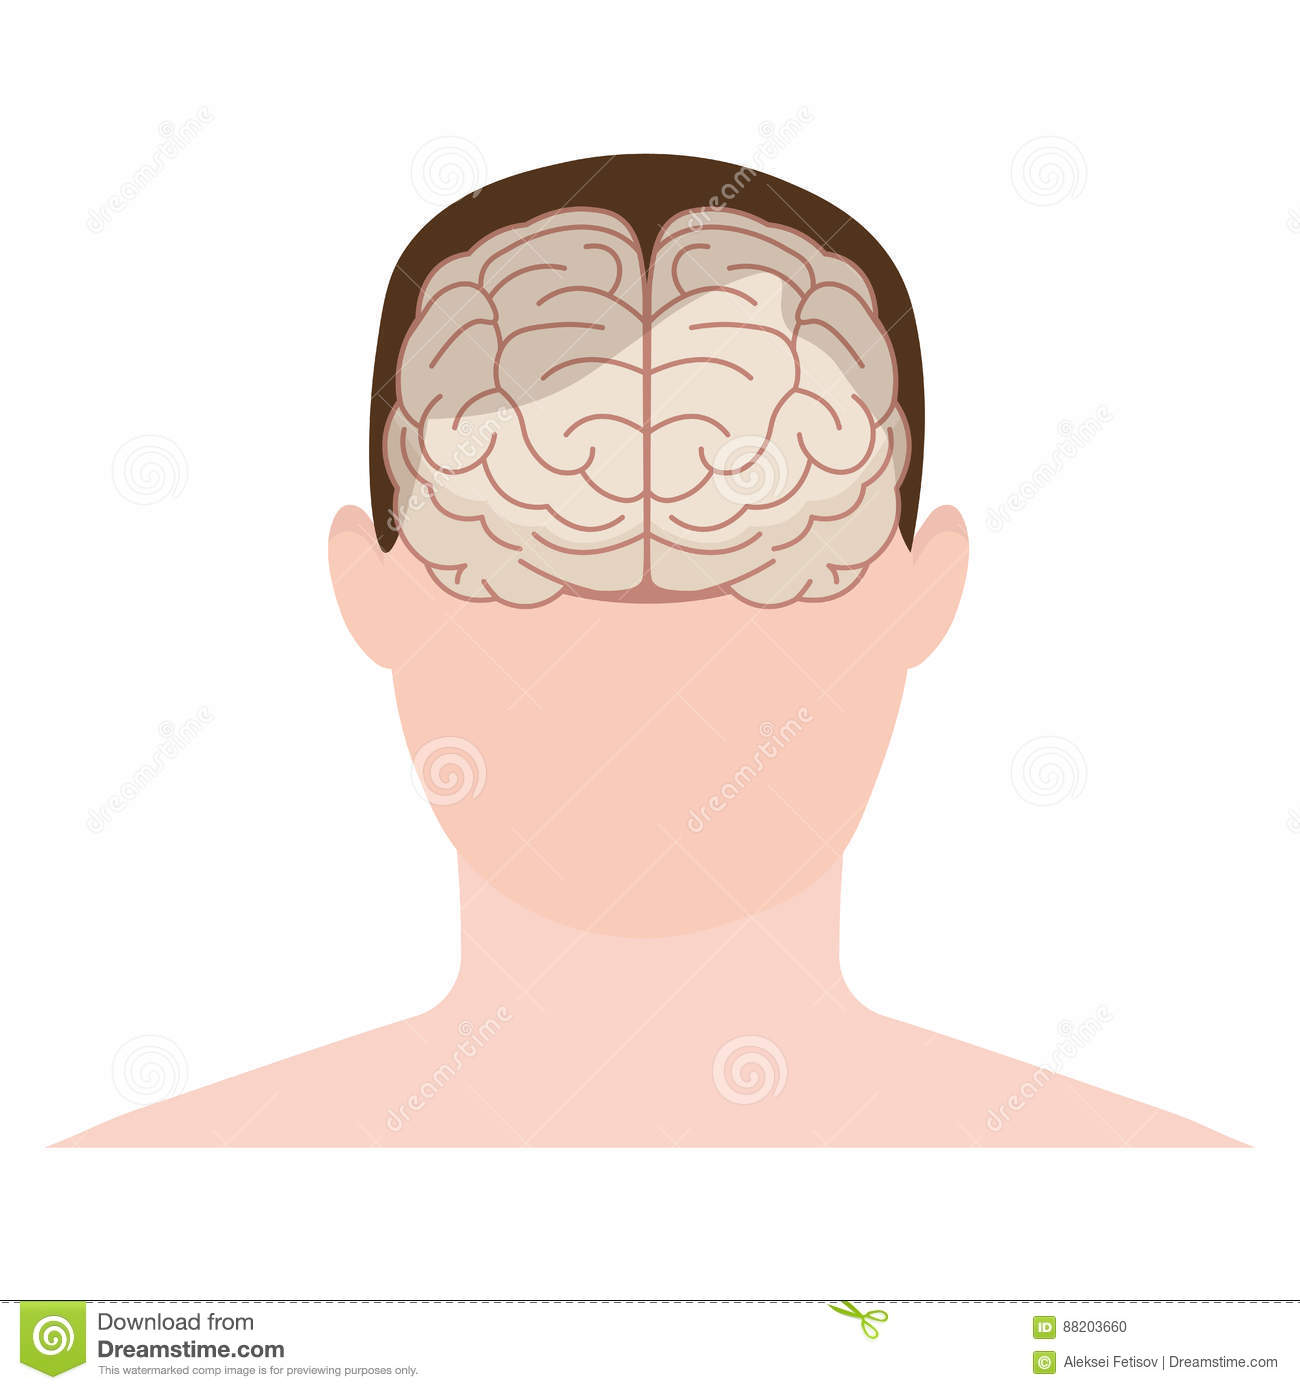 hight resolution of head human face and brain in flat style vector illustration